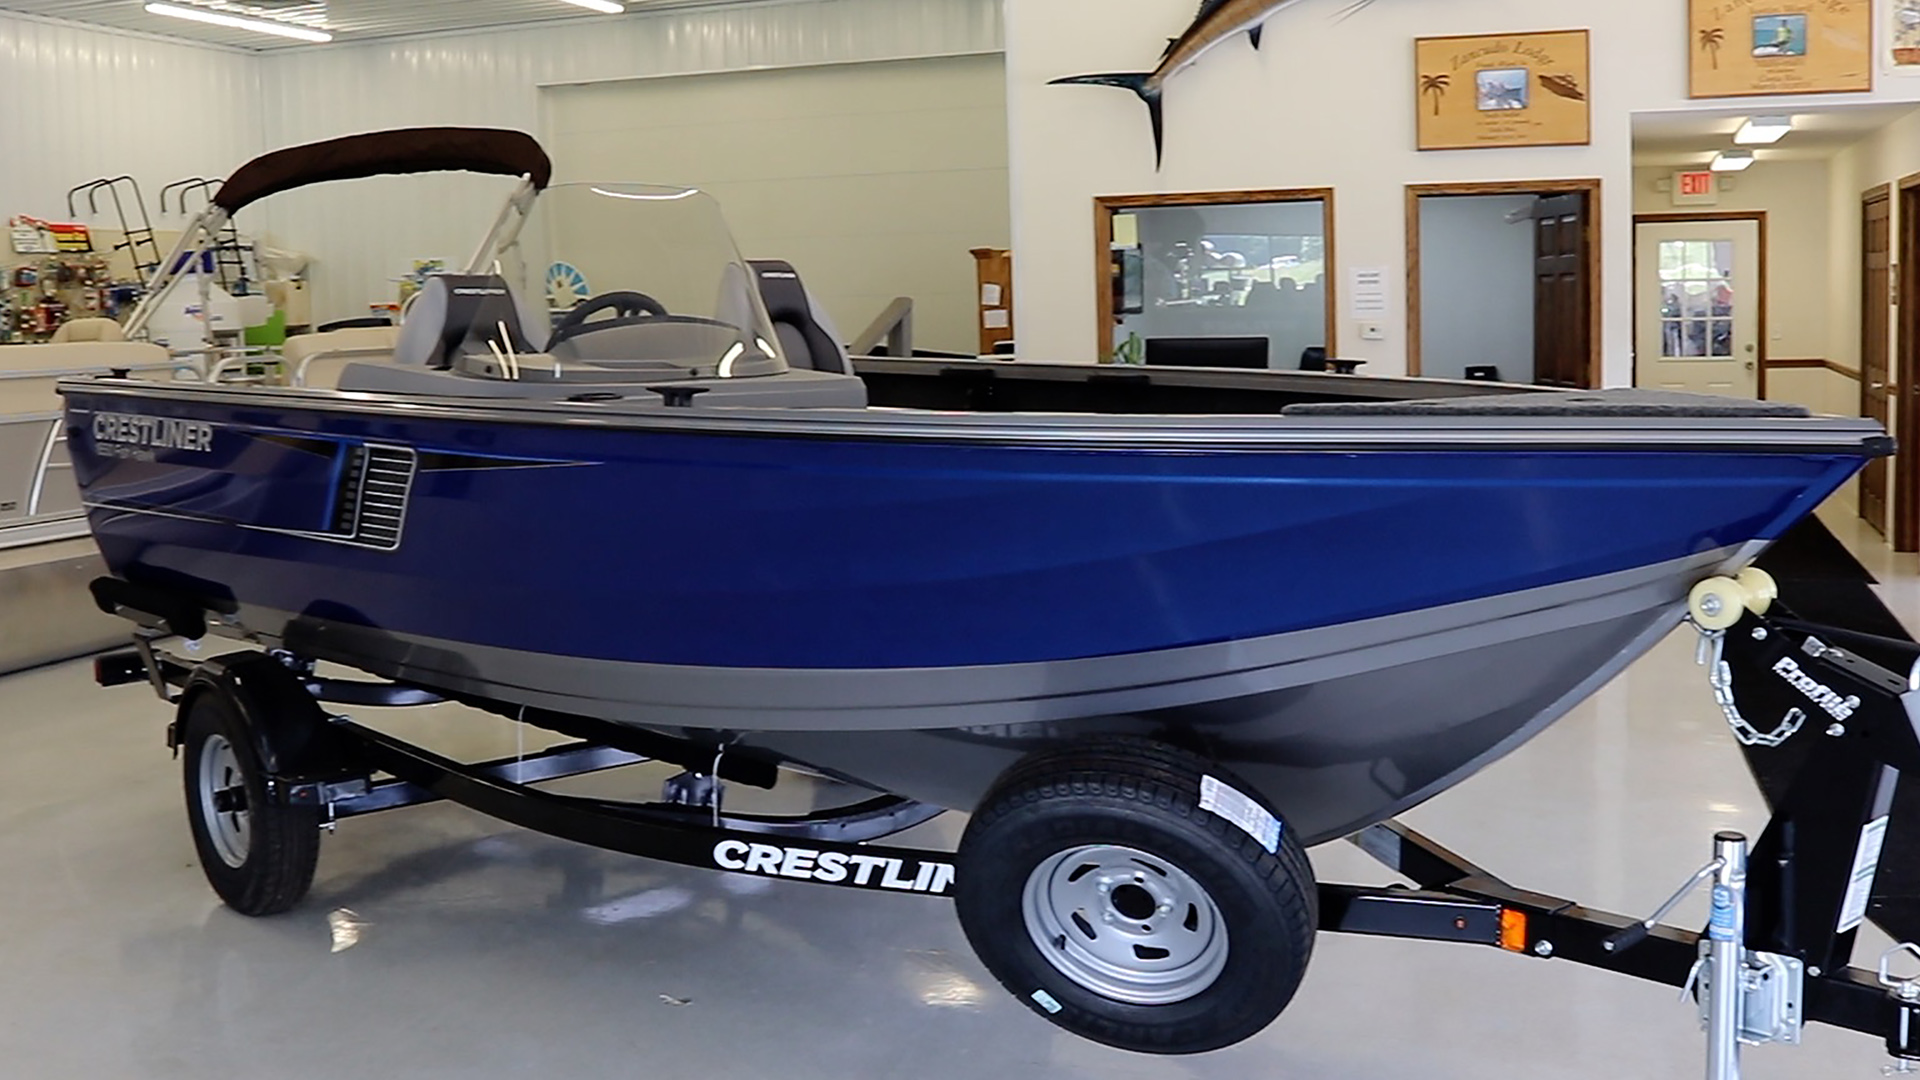 Holiday Shores Marina Crestliner Boat C